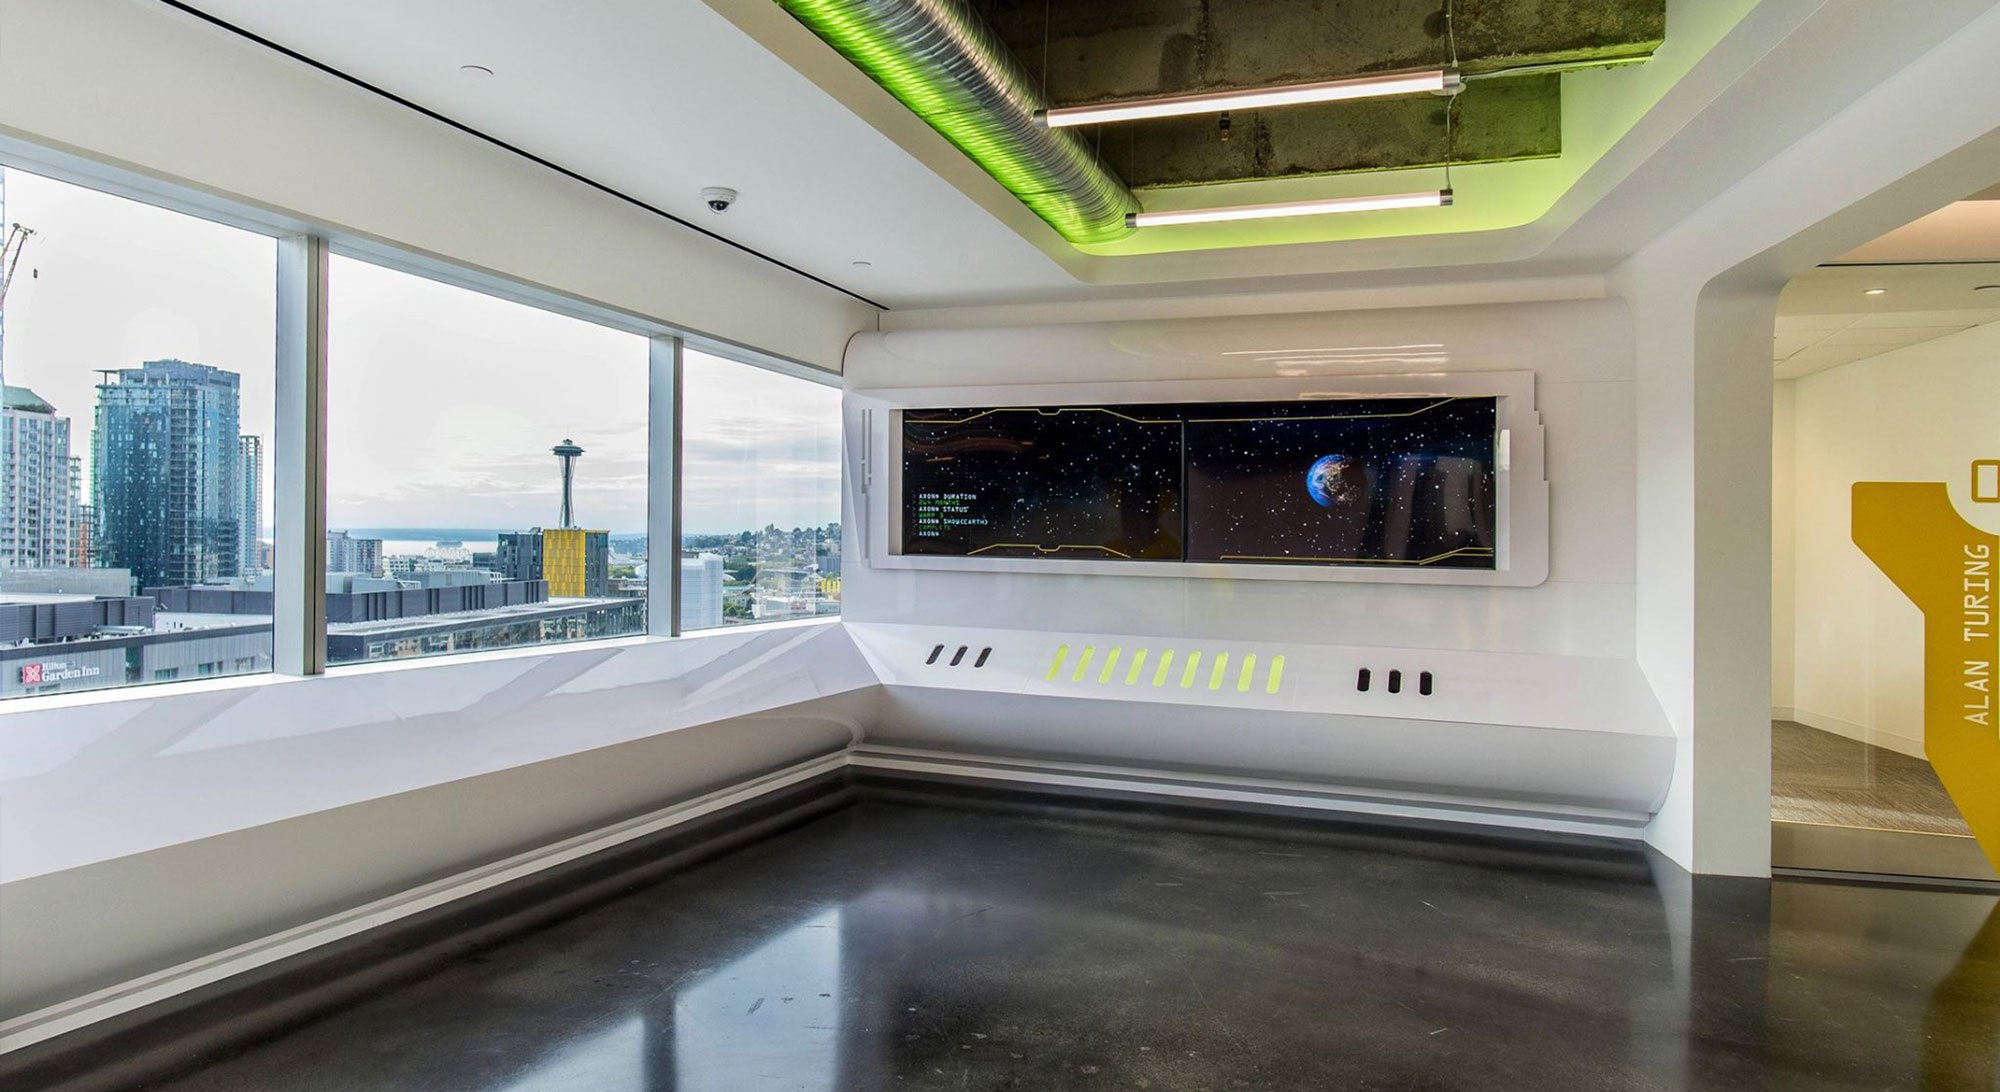 Axon office interior showing view of Space Needle and downtown Seattle. Interior has giant futuristic screen and florescent lighting